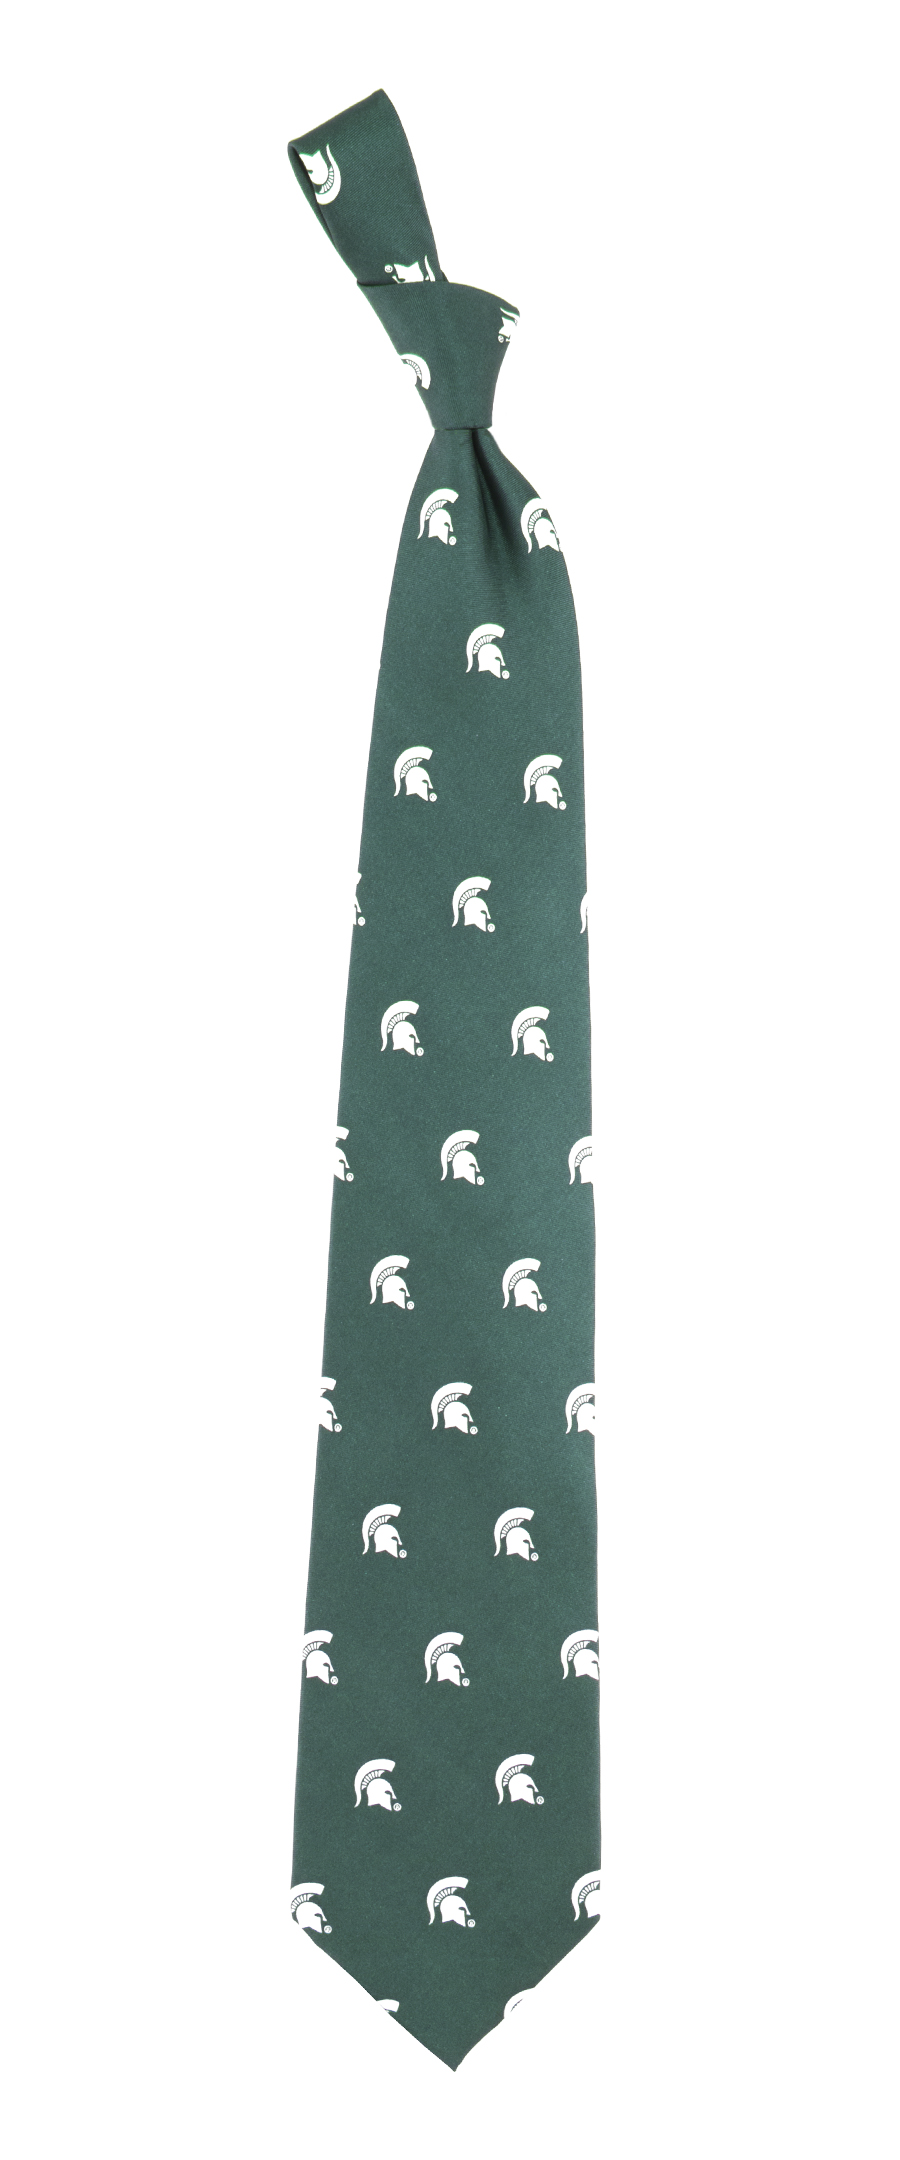 Michigan State Ties